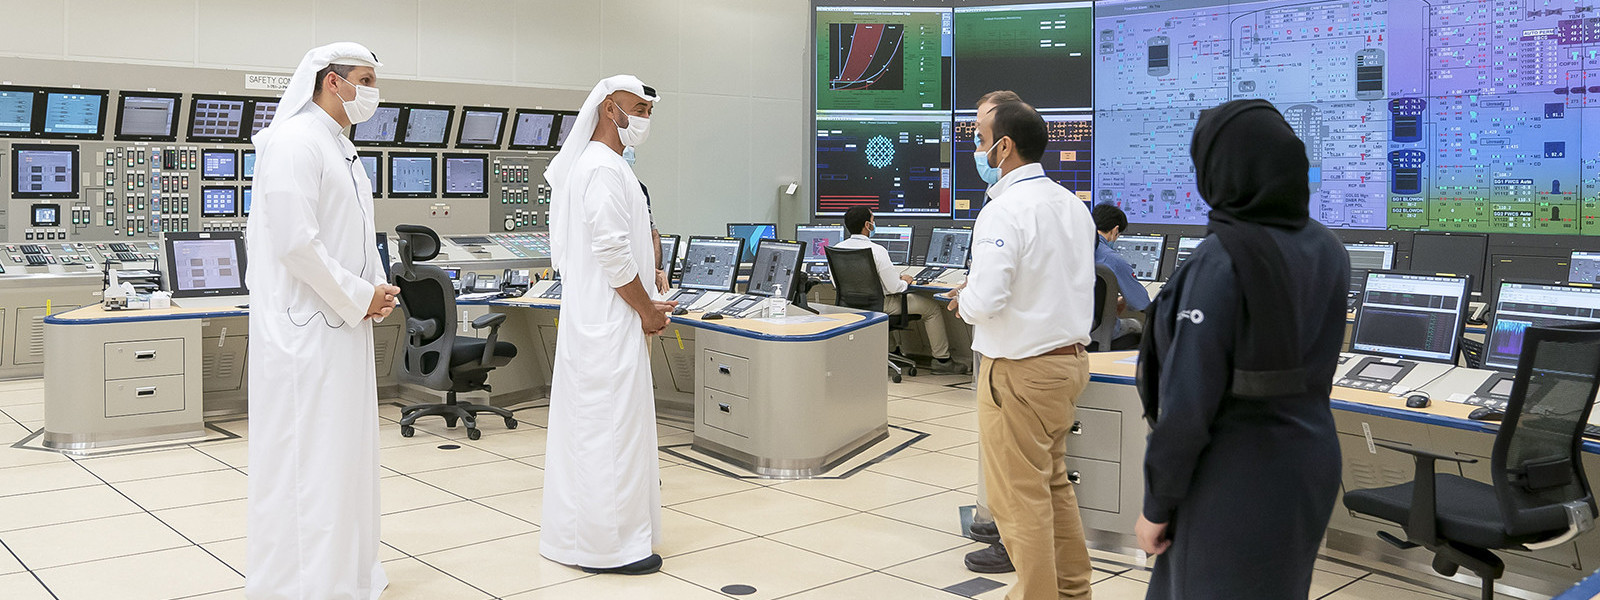 Powering the future growth and prosperity of the UAE